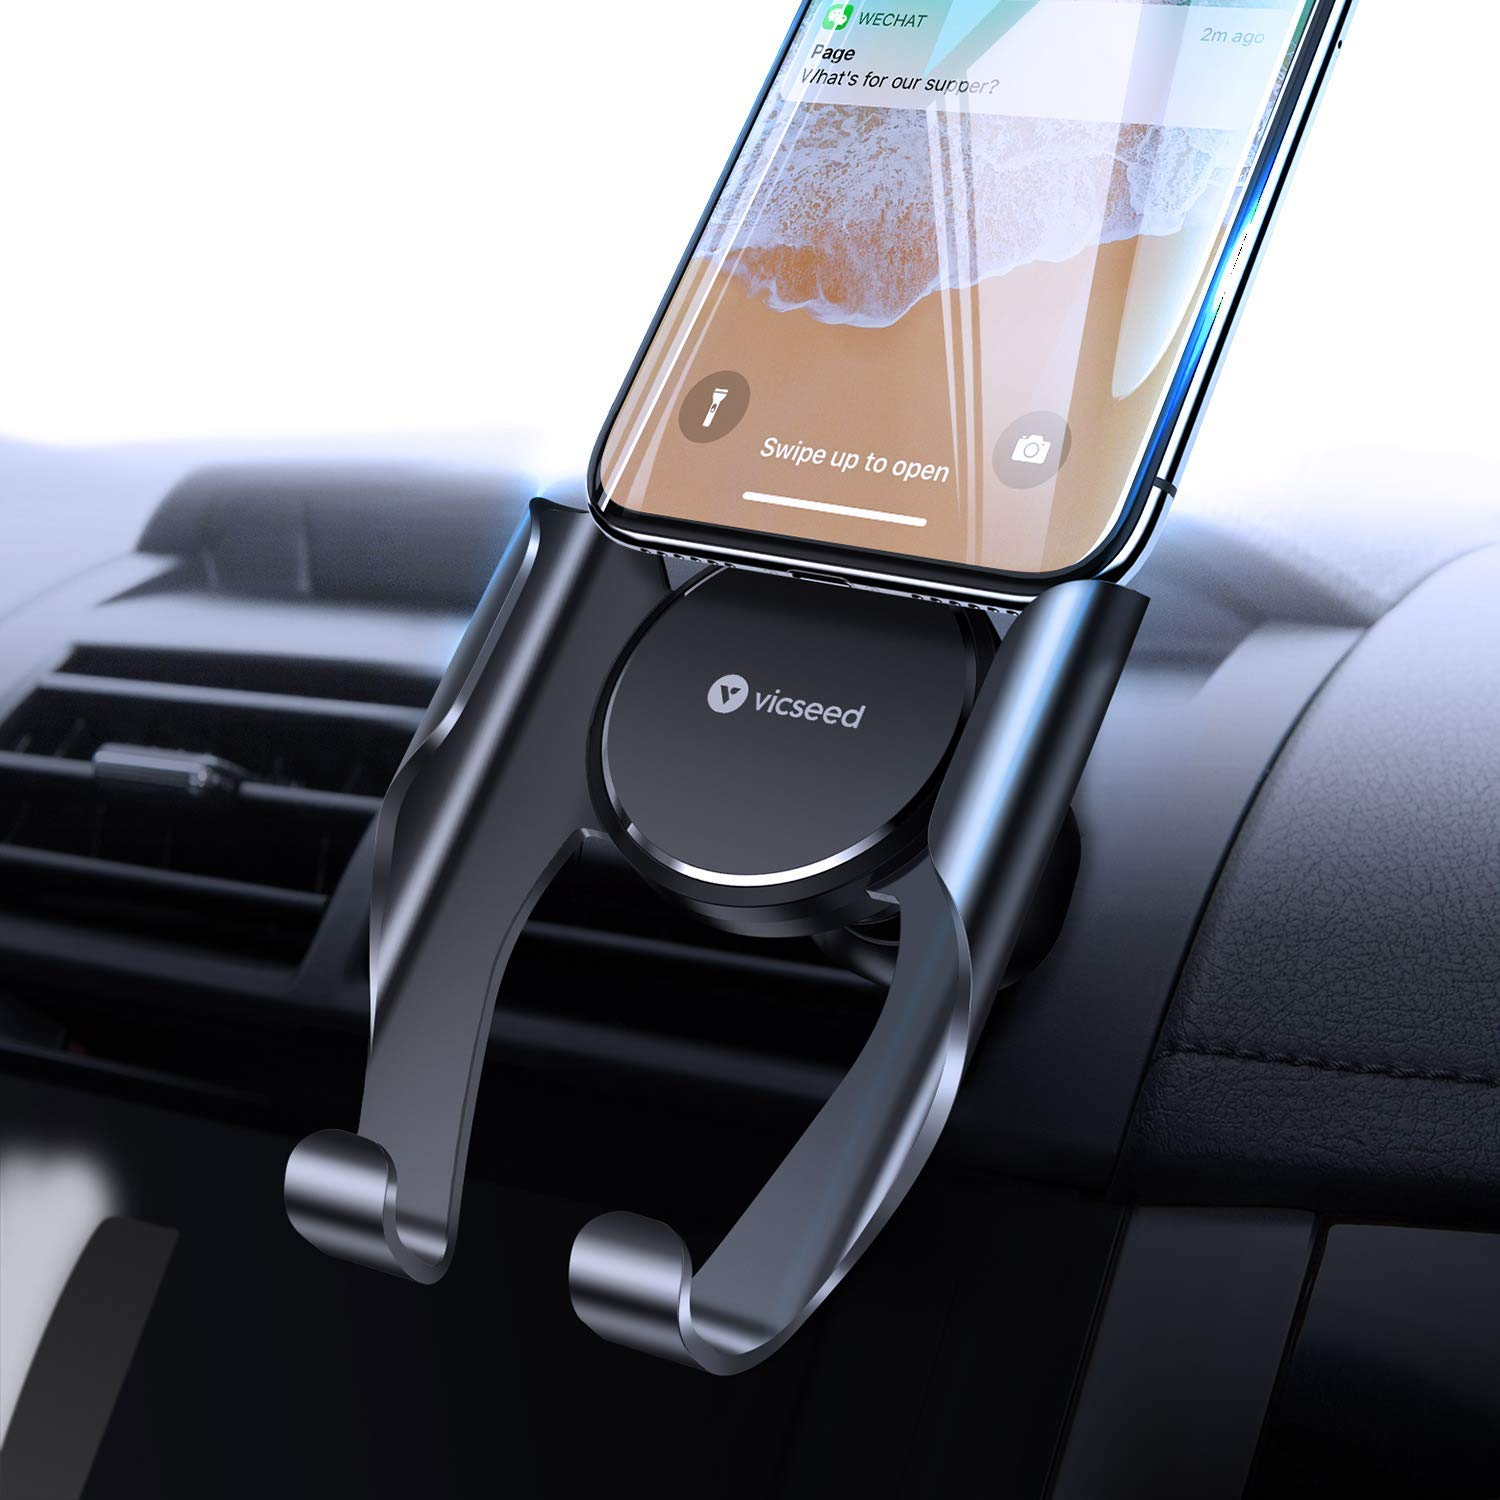 VICSEED Car Phone Mount, Air Vent Phone Holder for Car, Handsfree Cell Phone Car Mount